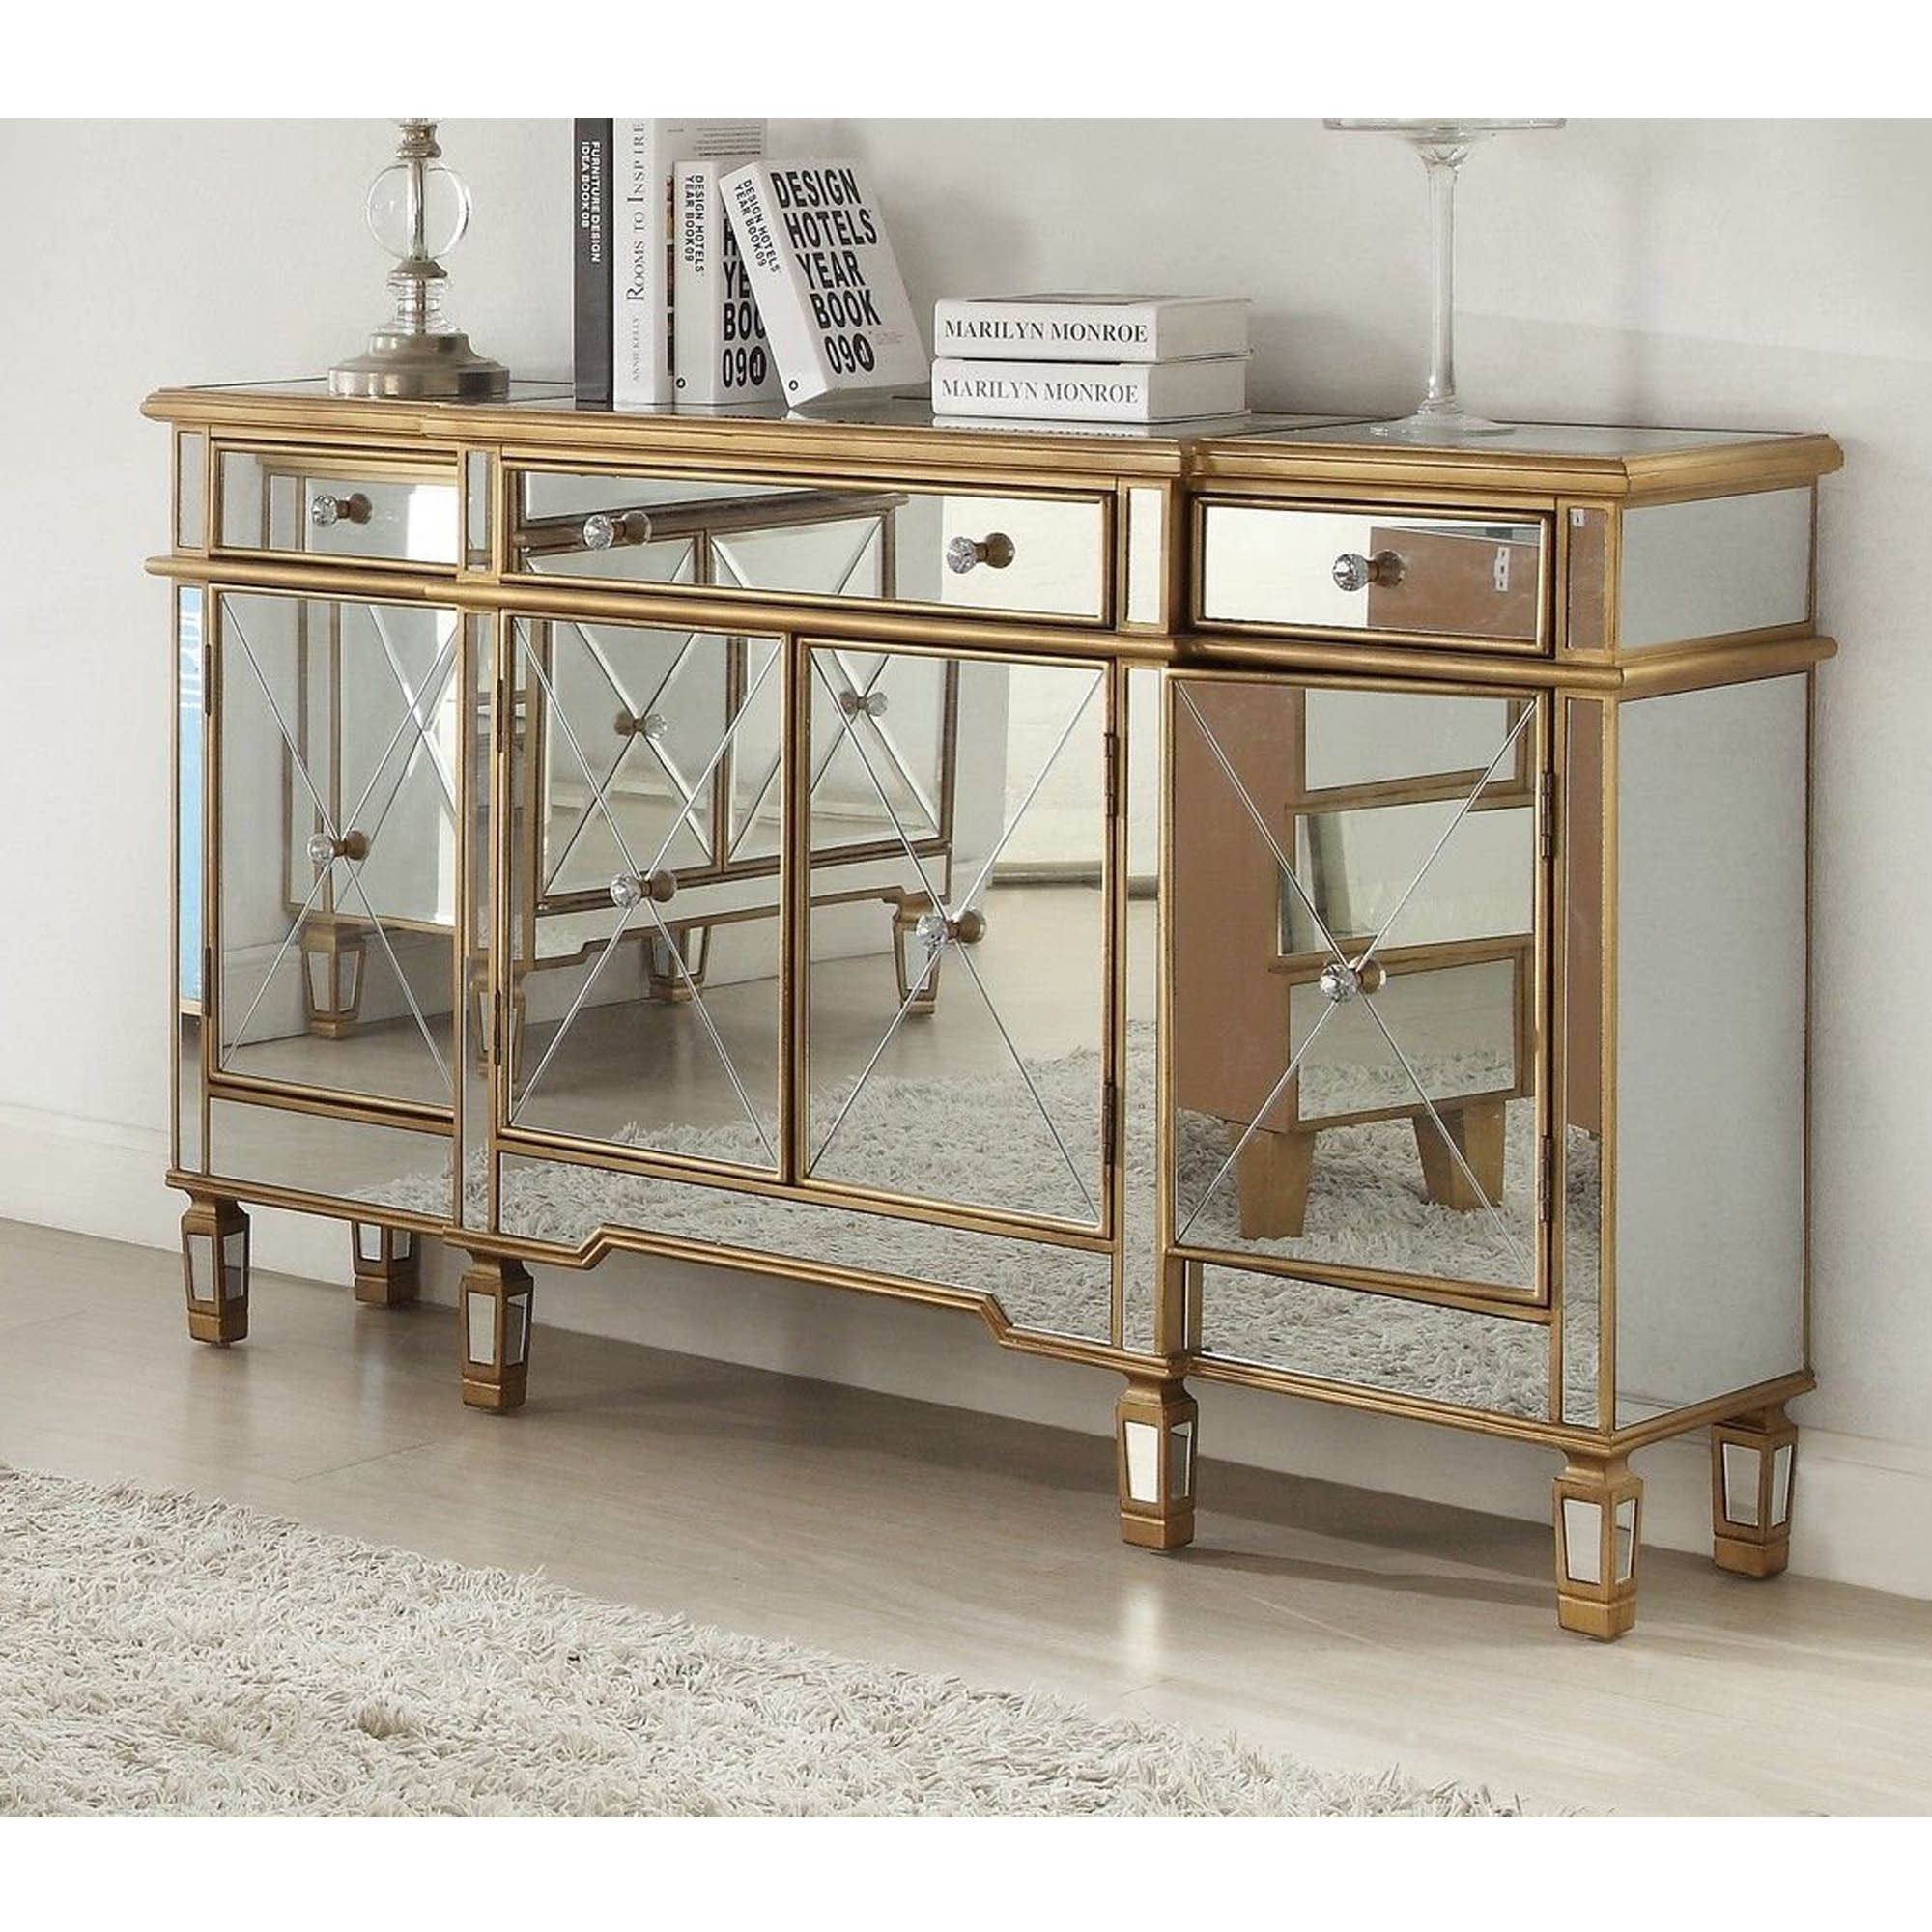 Decorating Dining Room Buffets And Sideboards Imperial Mirrored Sideboard Mirrored Homesdirect365